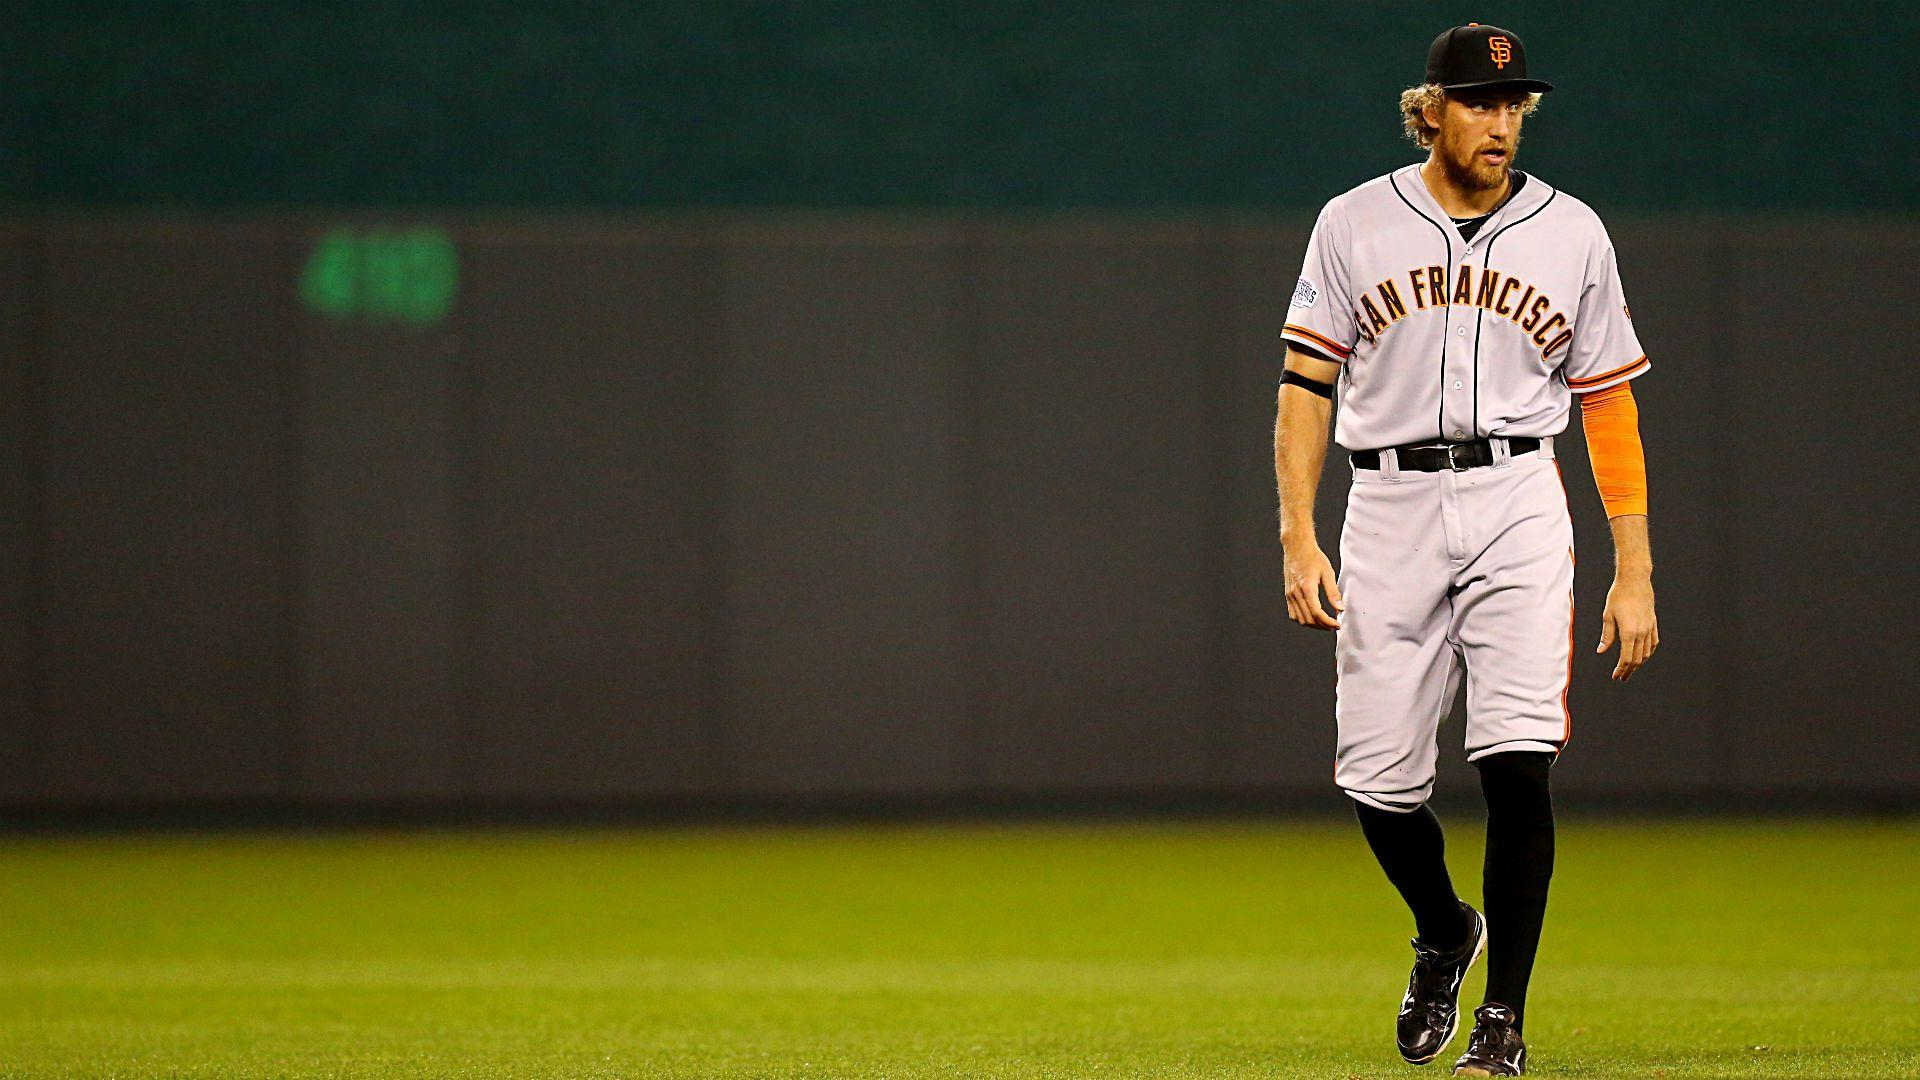 World Series 2014 Hunter Pence Reveals Character With His Salute